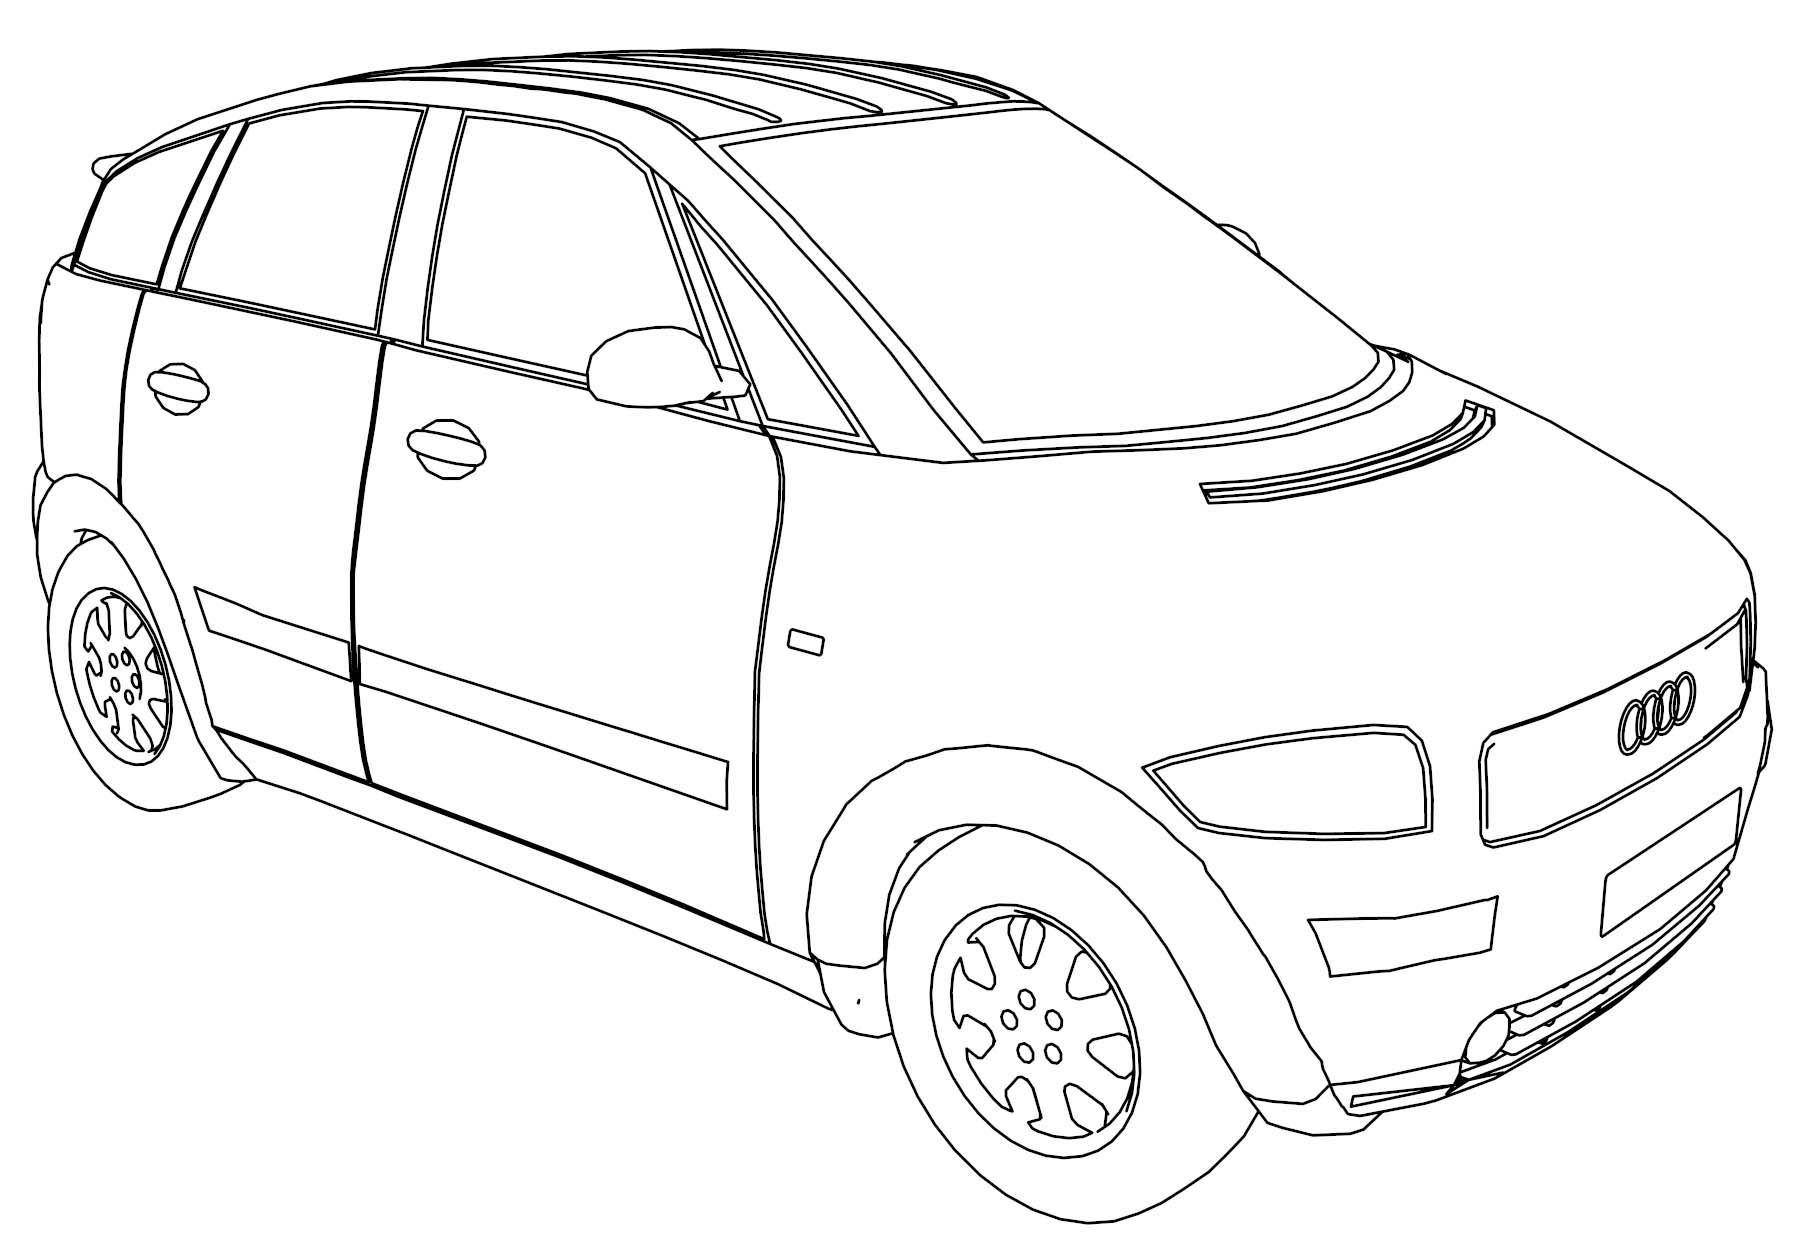 audi coloring pages nice audi a2 car coloring page cars coloring pages audi audi coloring pages